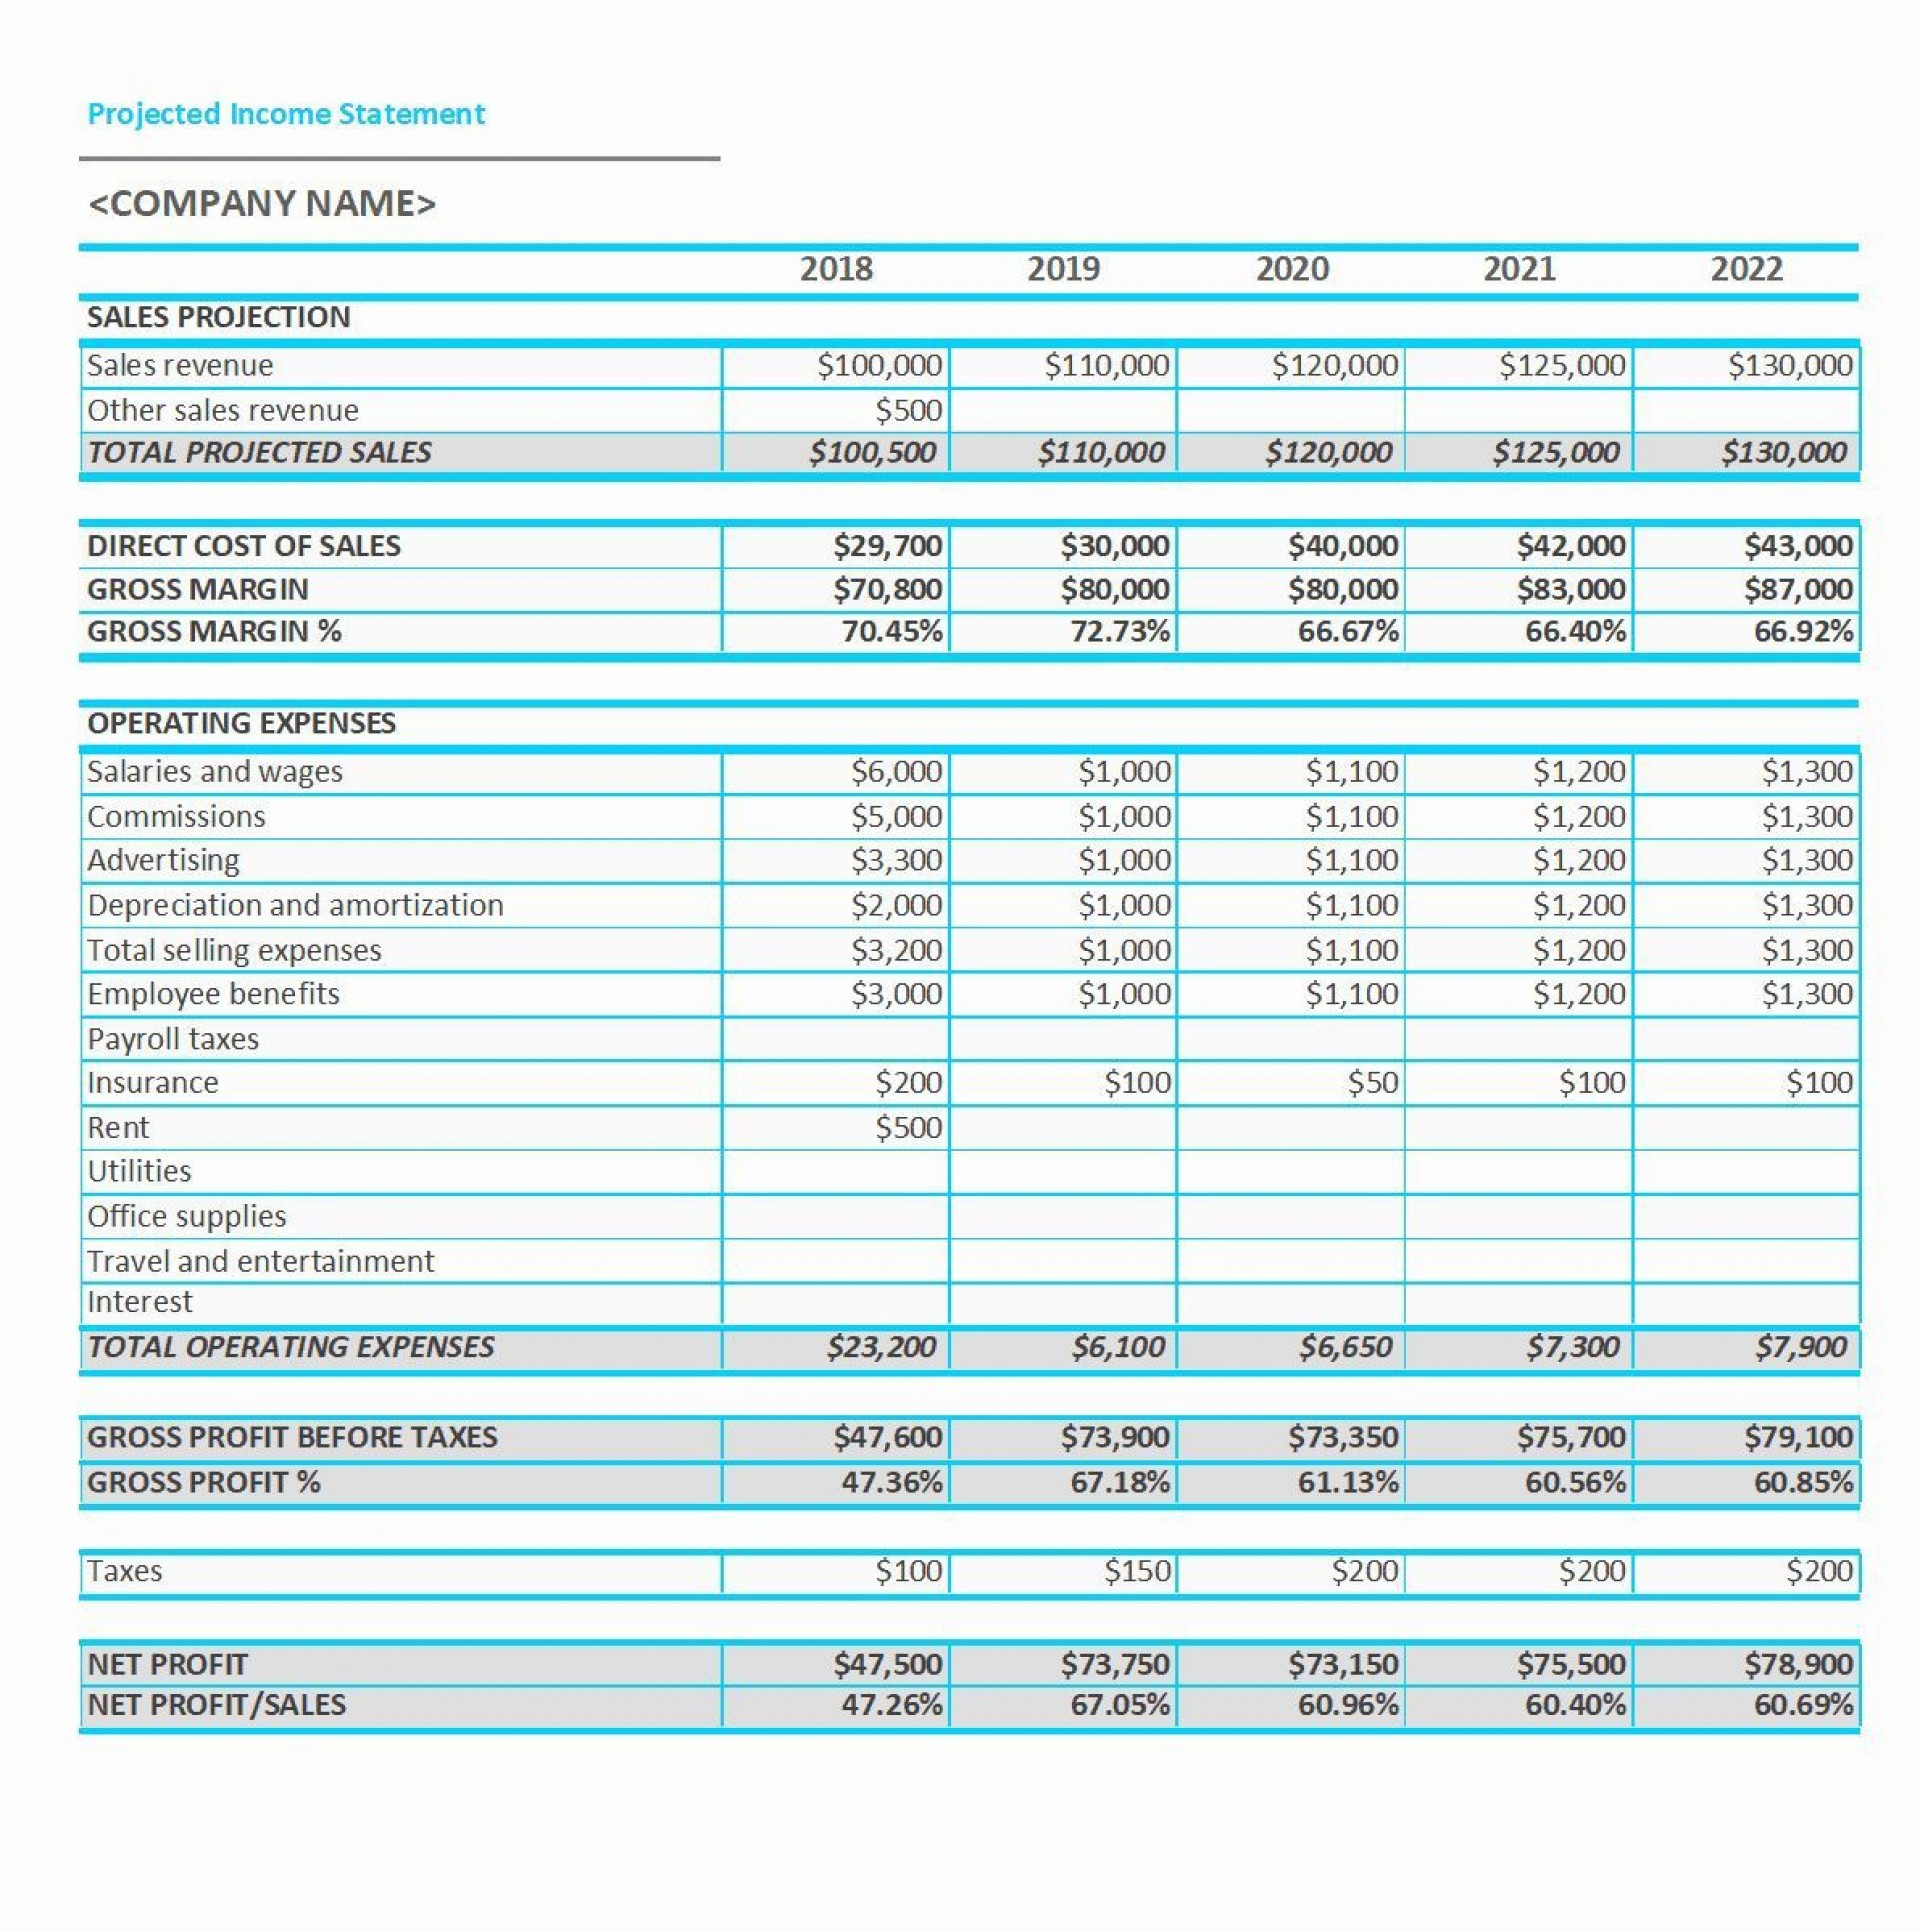 001 Sensational Projected Income Statement Excel Format Inspiration 1920